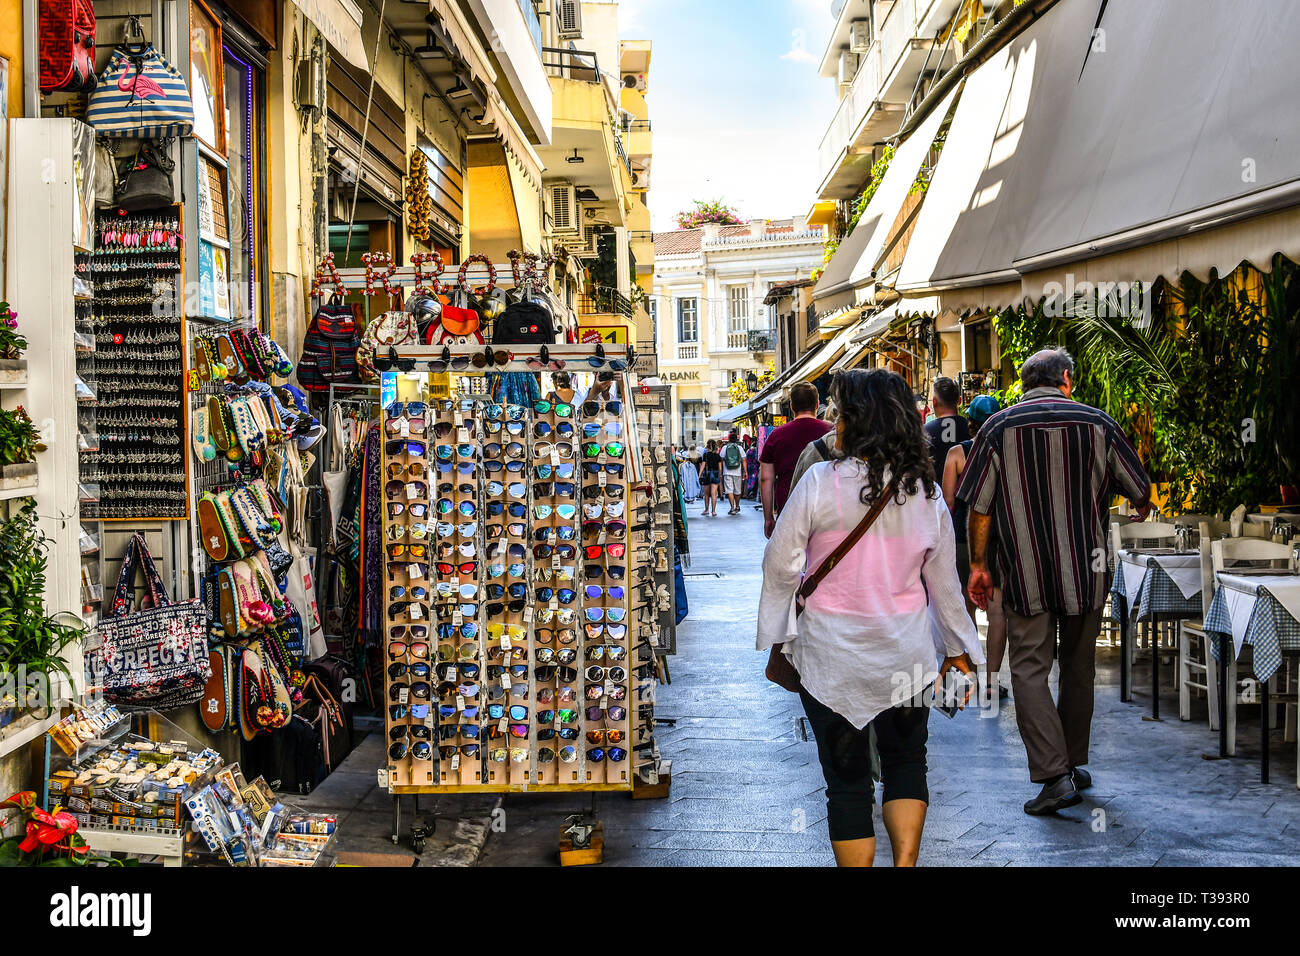 Tourists walk the narrow path between souvenir shops and outdoor vendors selling gifts in the touristic Plaka section of Athens, Greece. Stock Photo